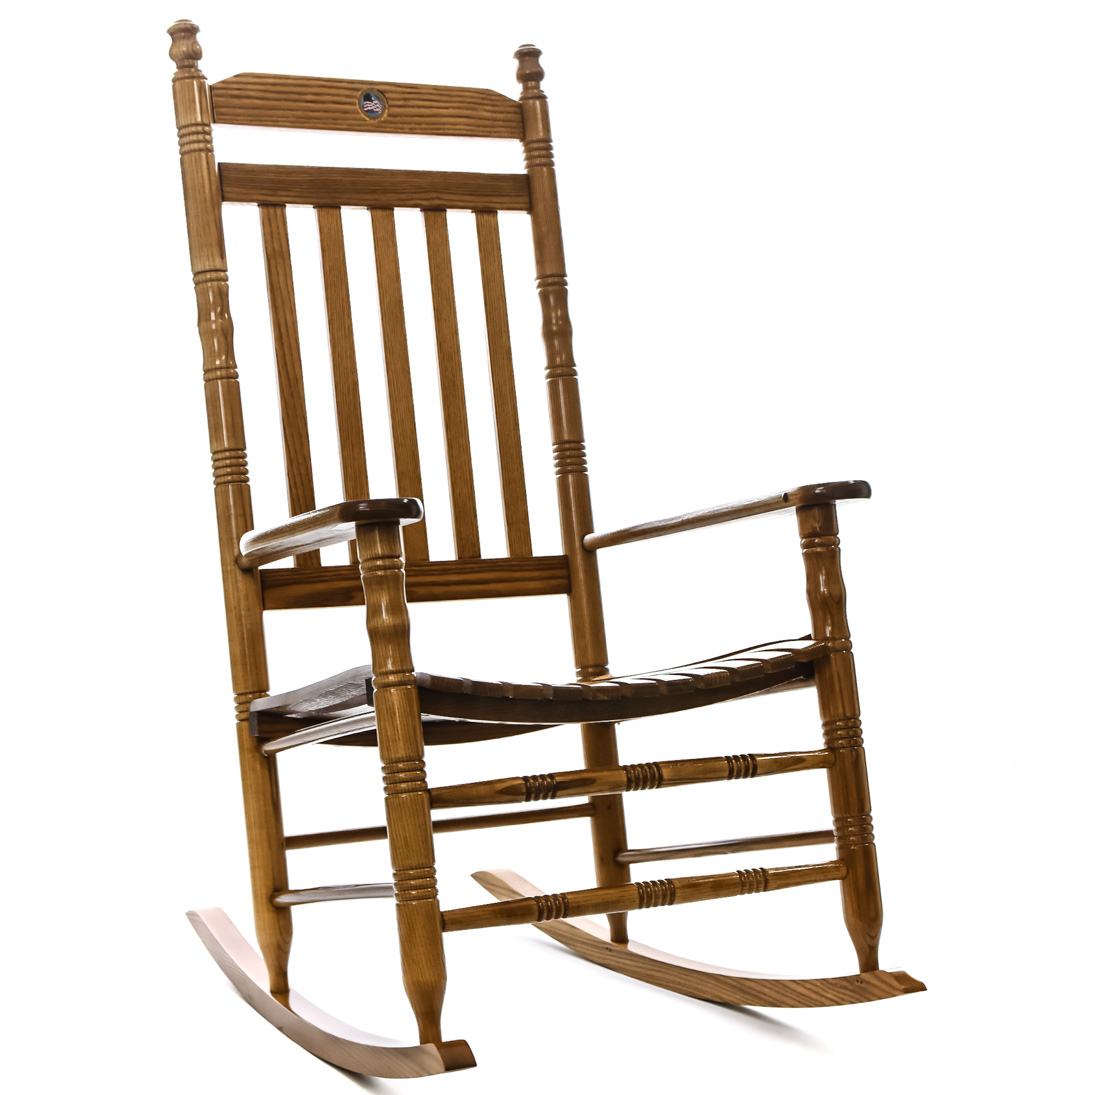 U.S. Fully Assembled Rocking Chair